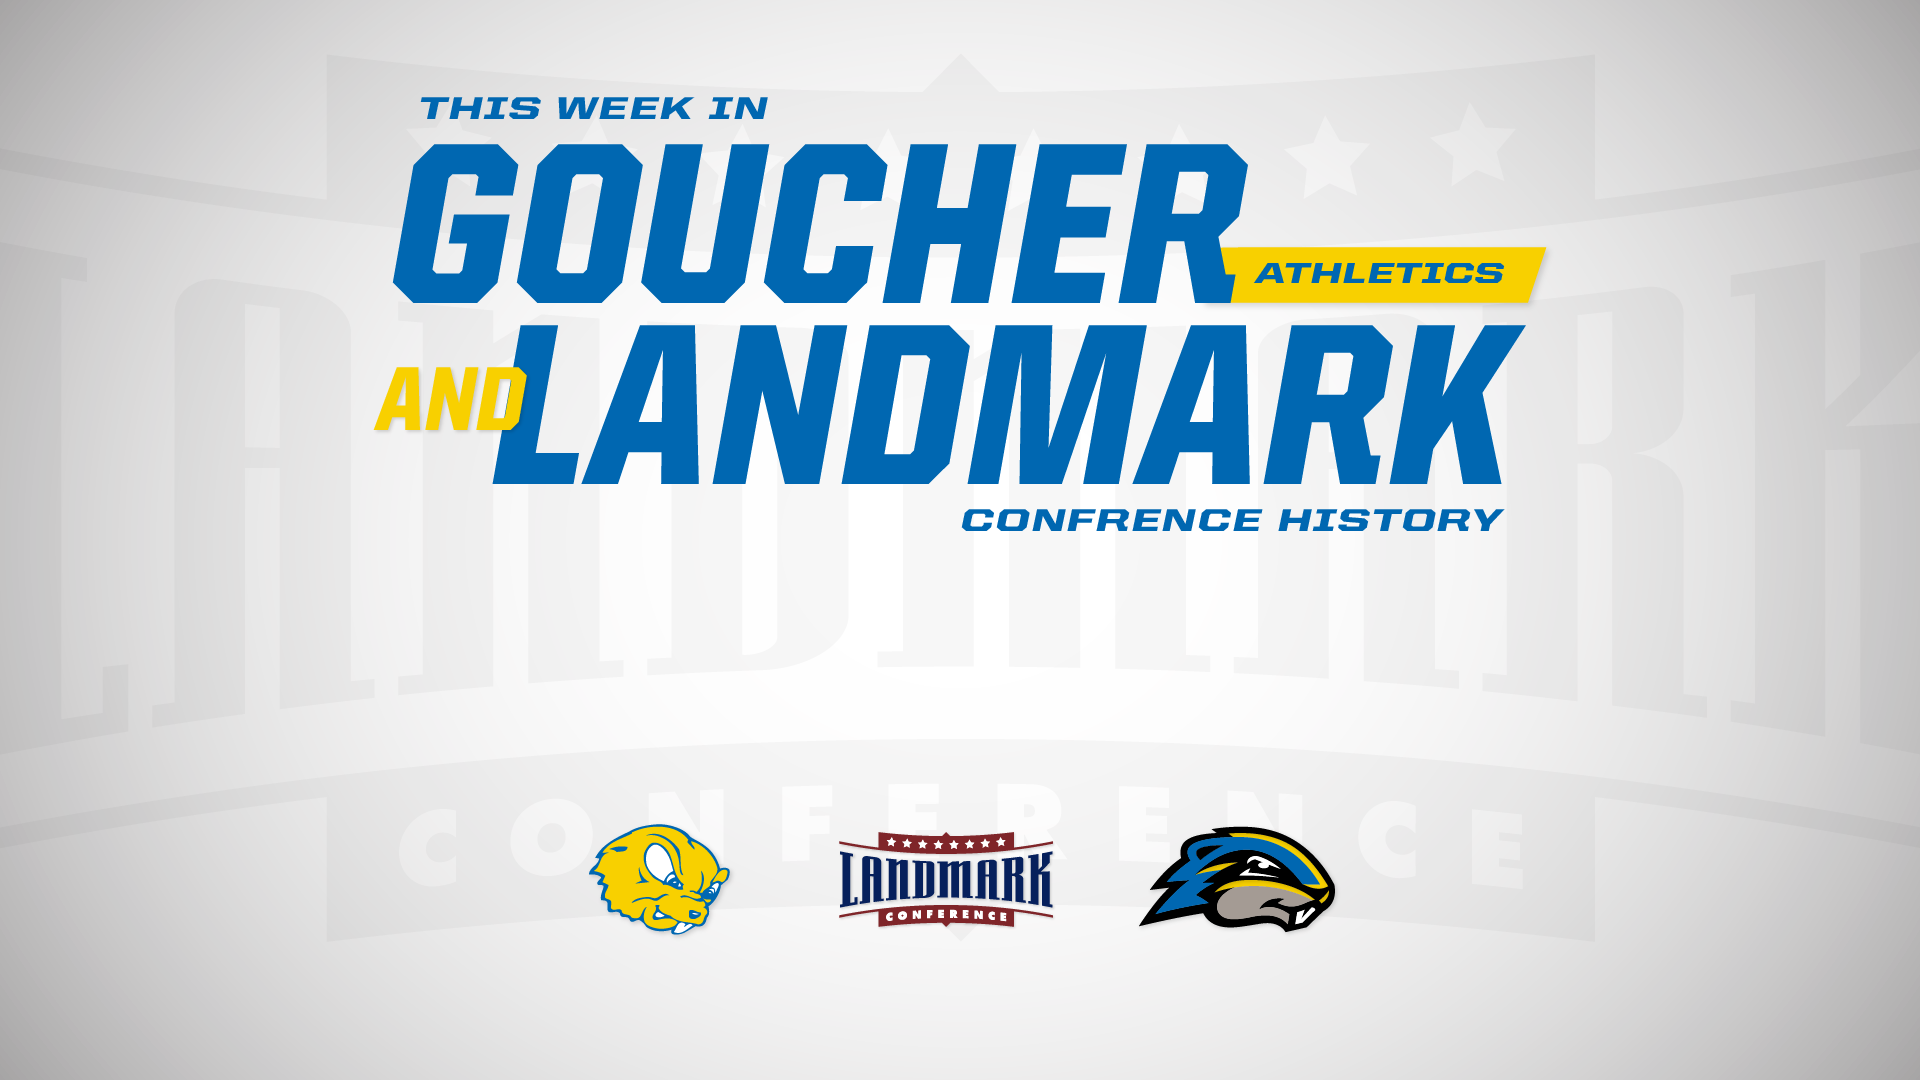 This Week In Goucher Landmark Conference History (September 7-13)